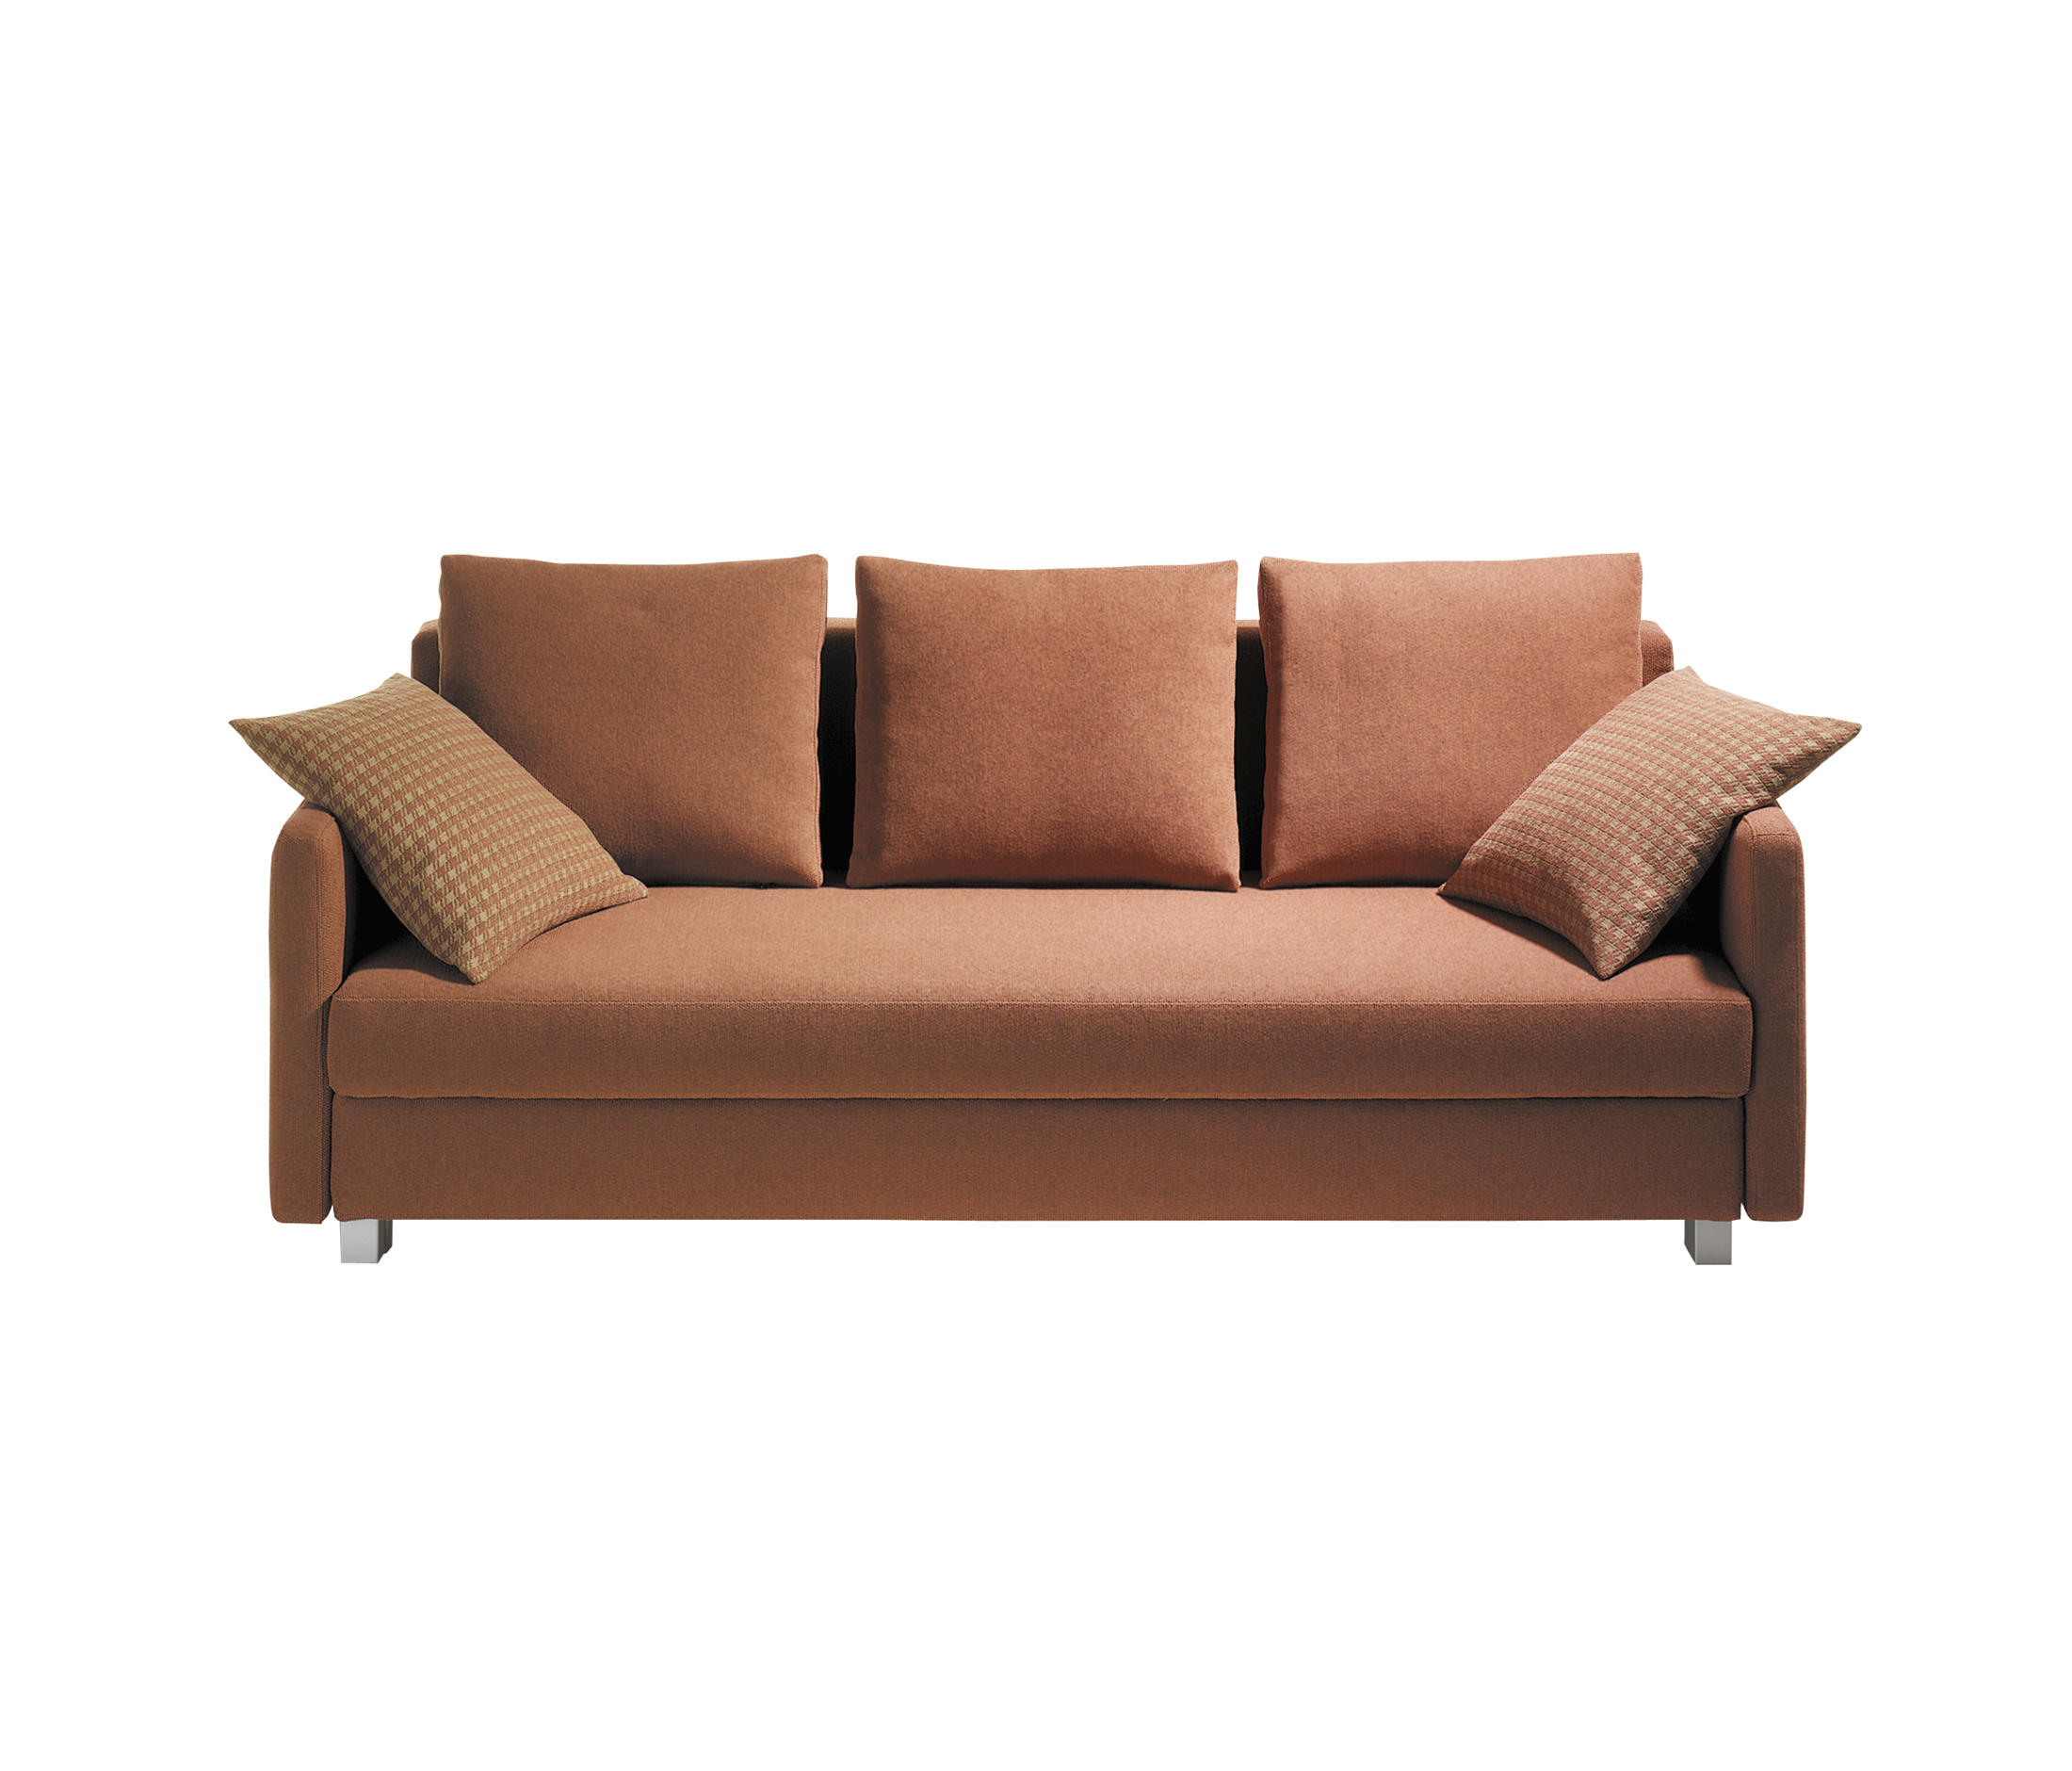 sona sofa-bed - sofa beds from die collection | architonic, Hause deko